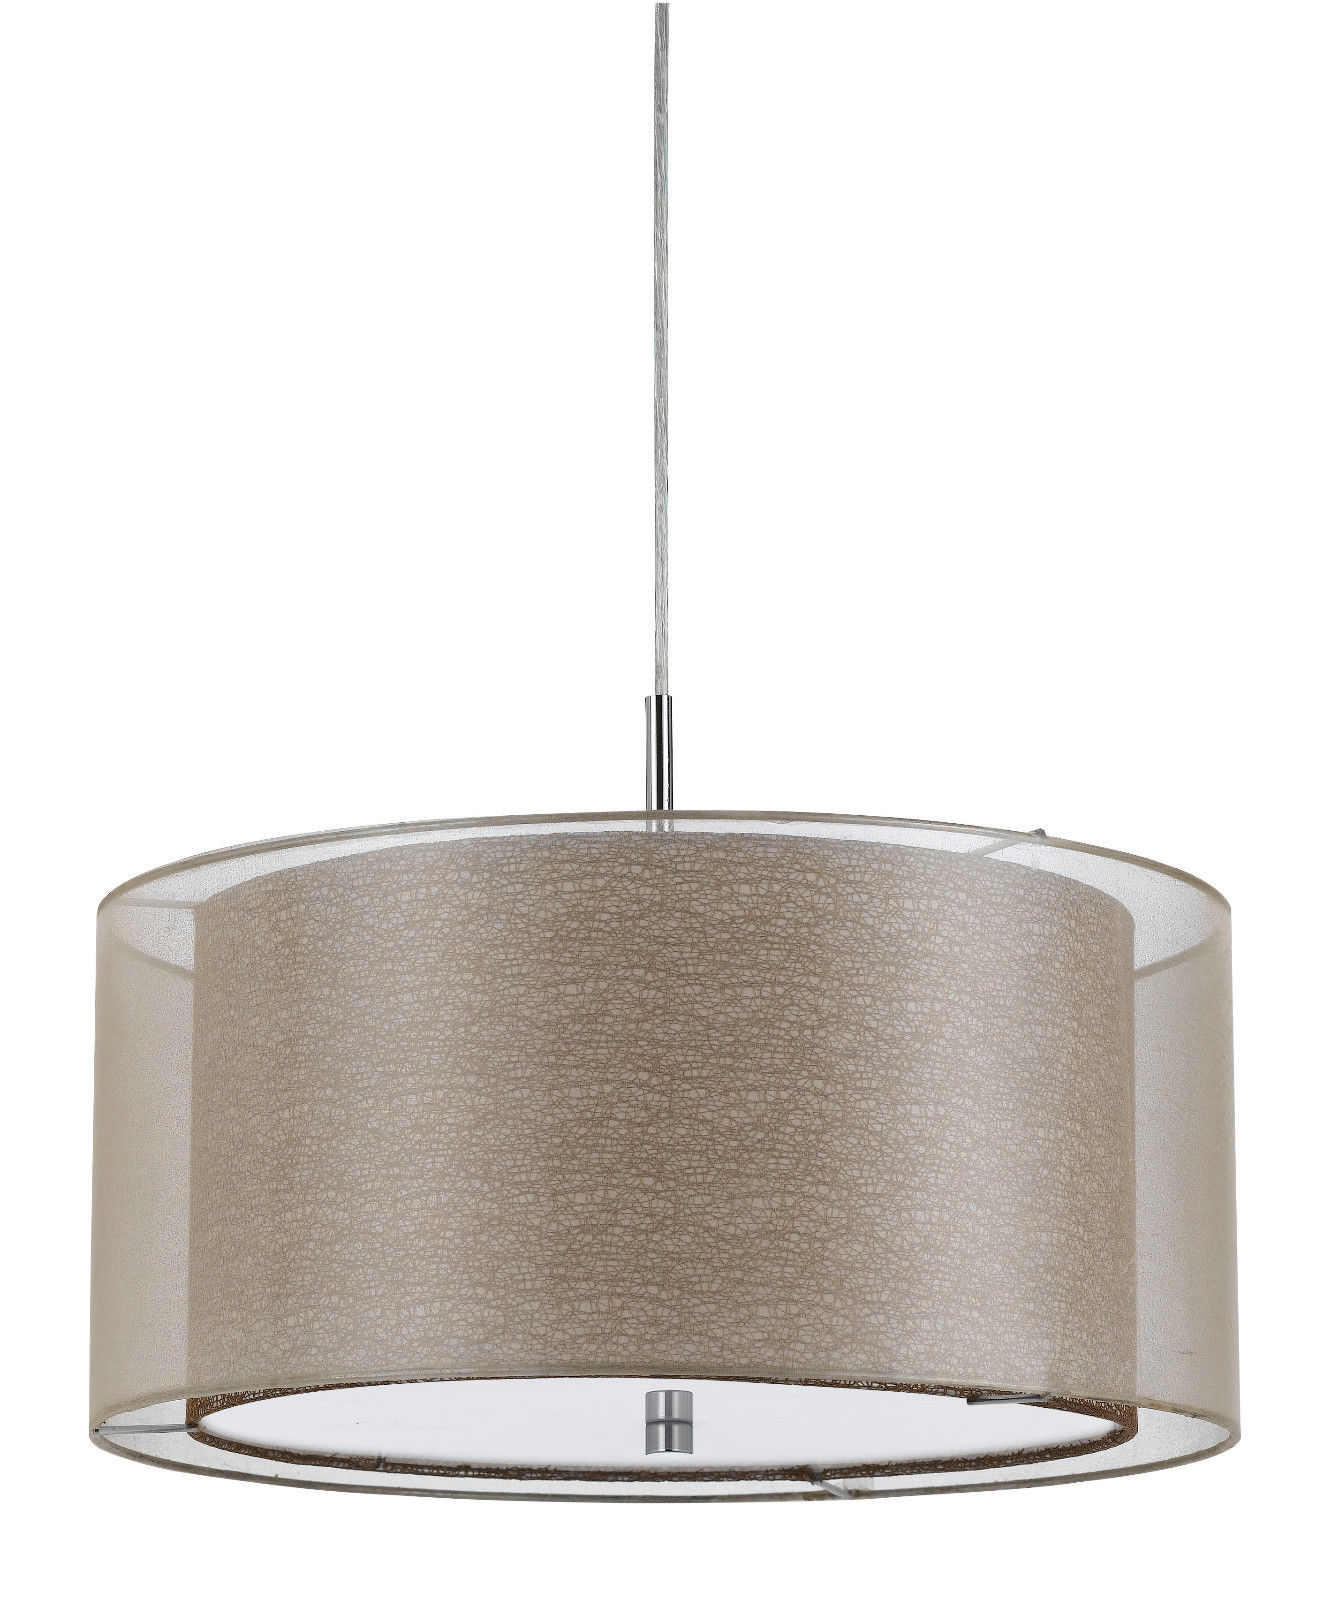 foto pendant lamp photo - 9